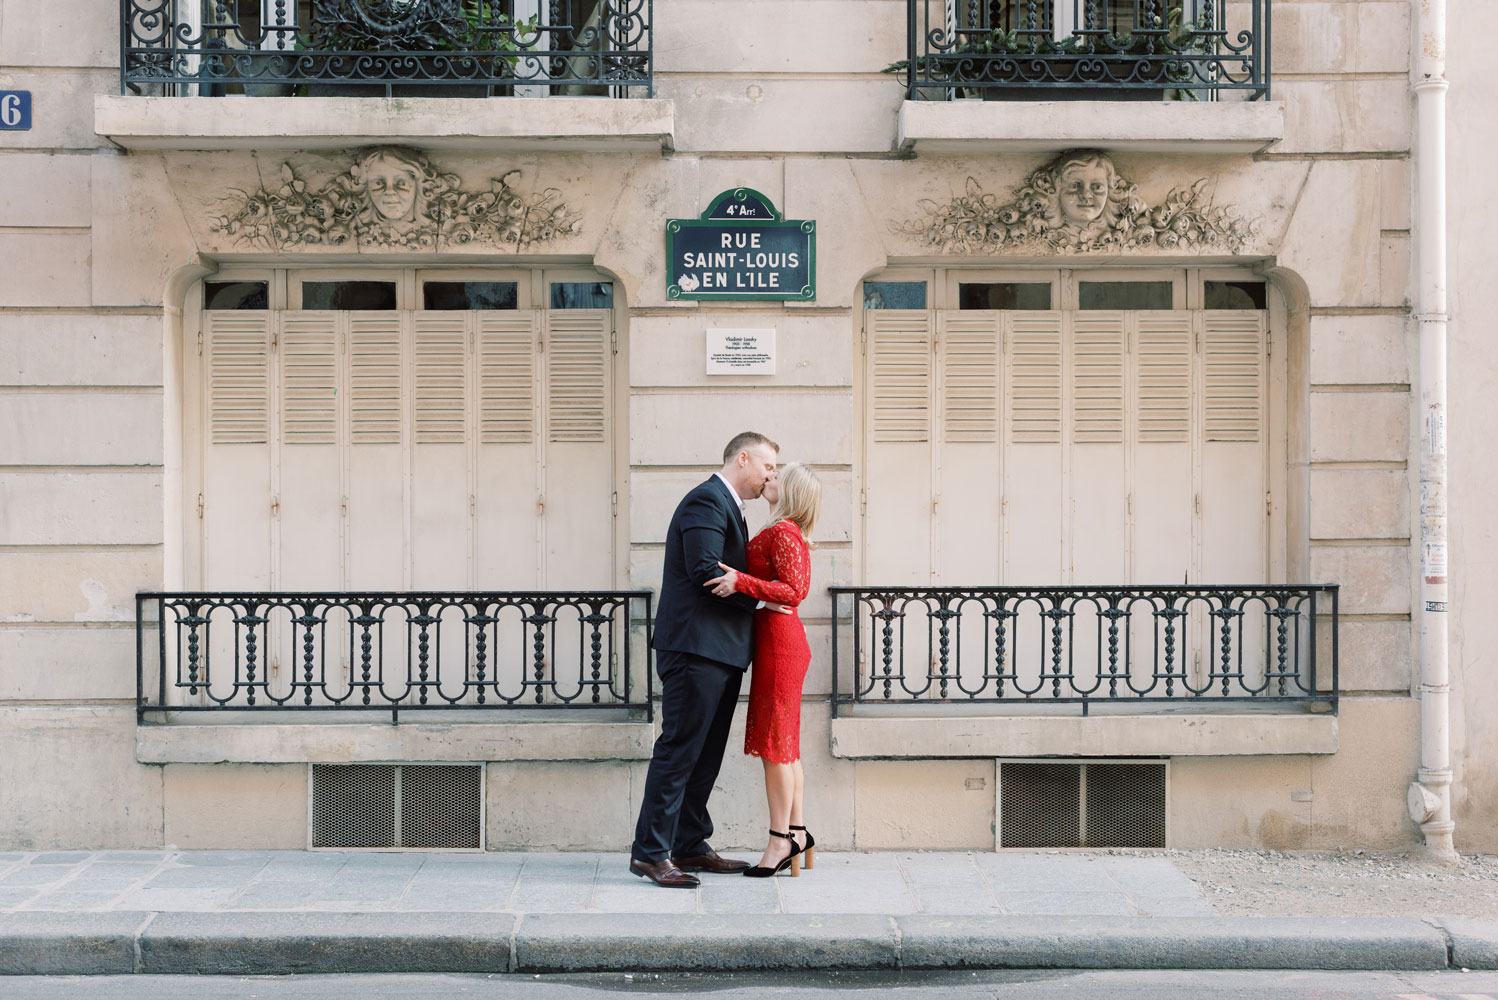 Paris Photographer Tim Moore with our elegant couple kissing on the Saint-Louis Island, one of the most iconic places in Paris.